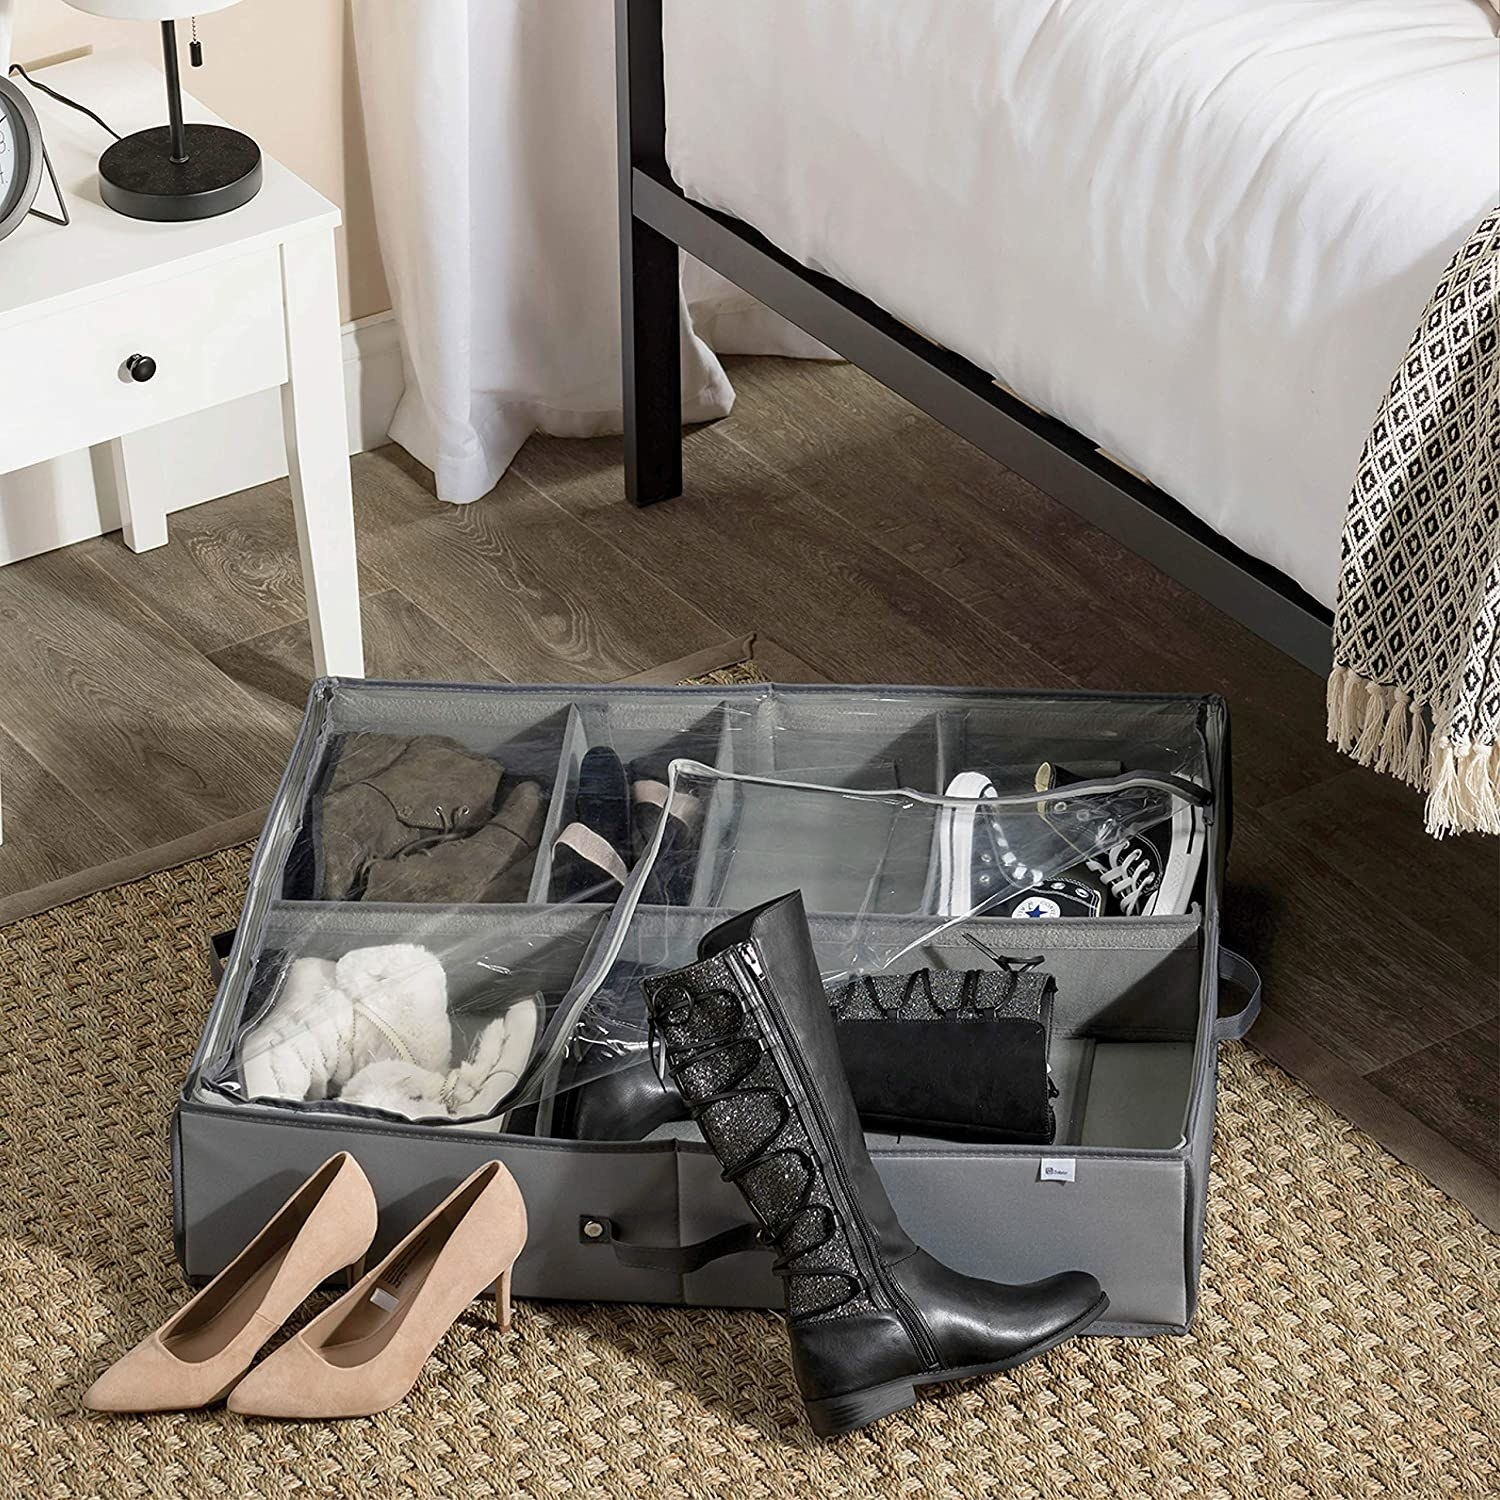 A large fabric container on the floor filled with shoes